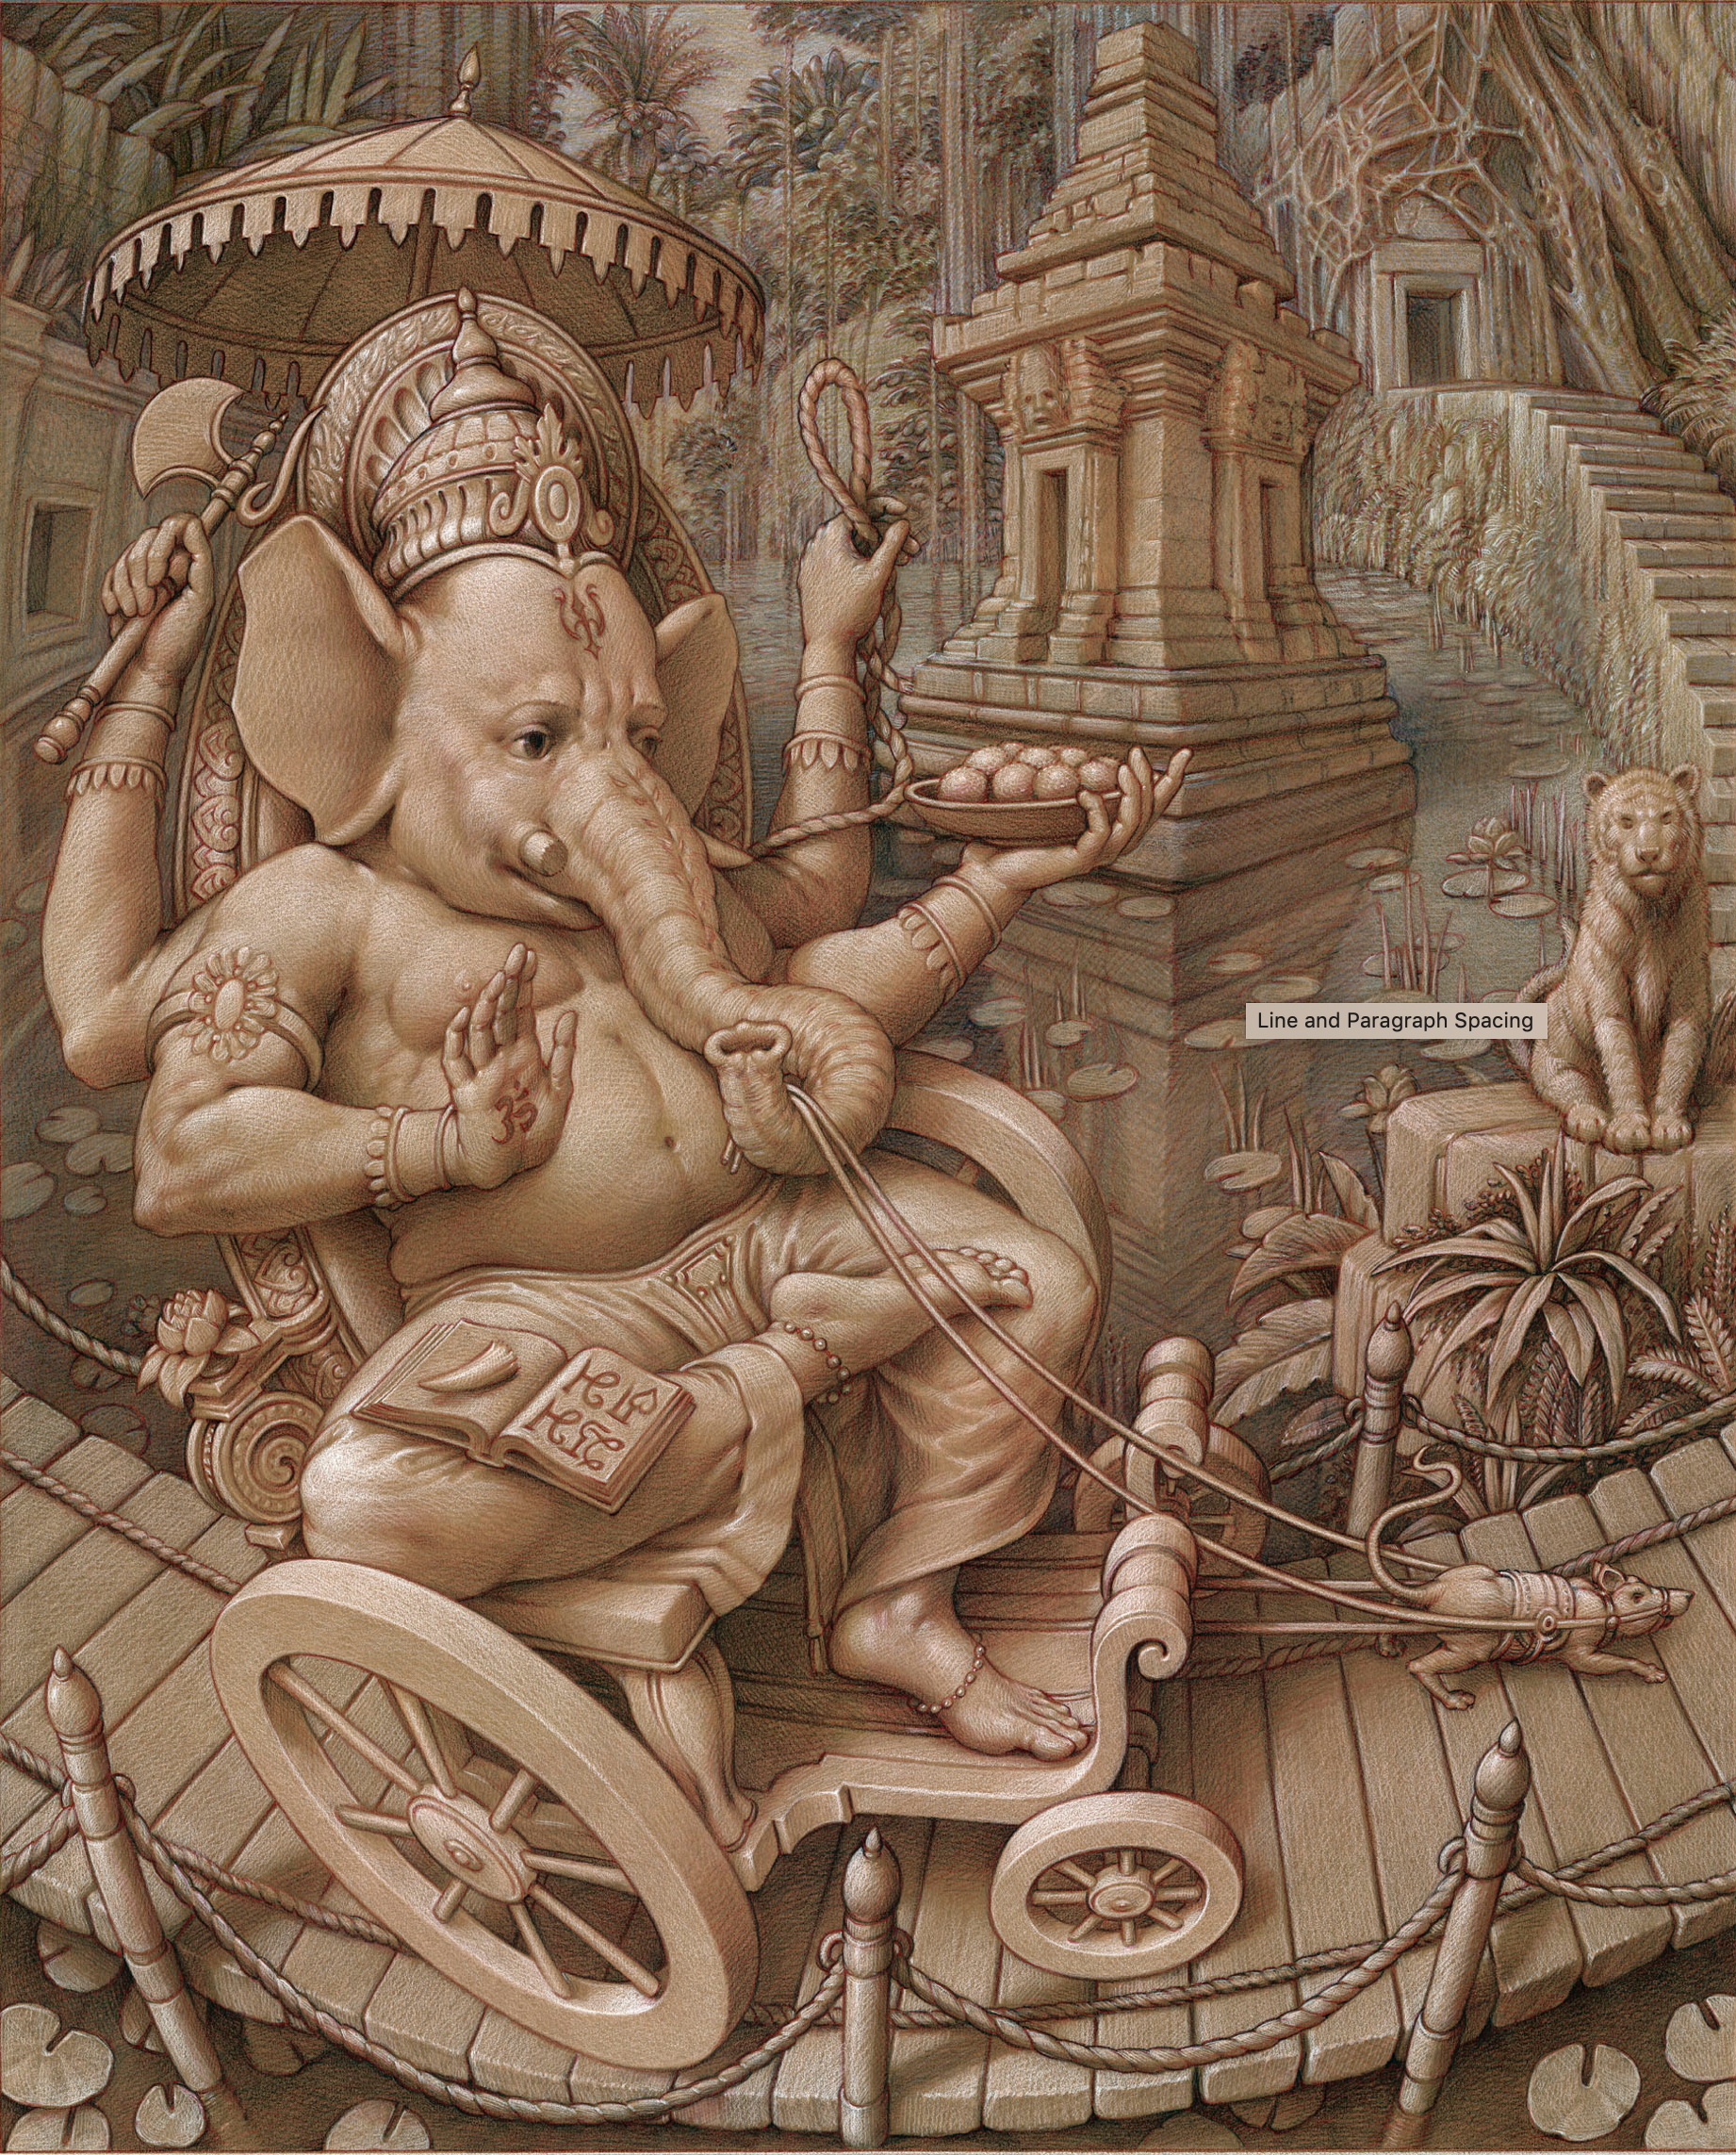 Drawing & pastel art by Kurt Wenner